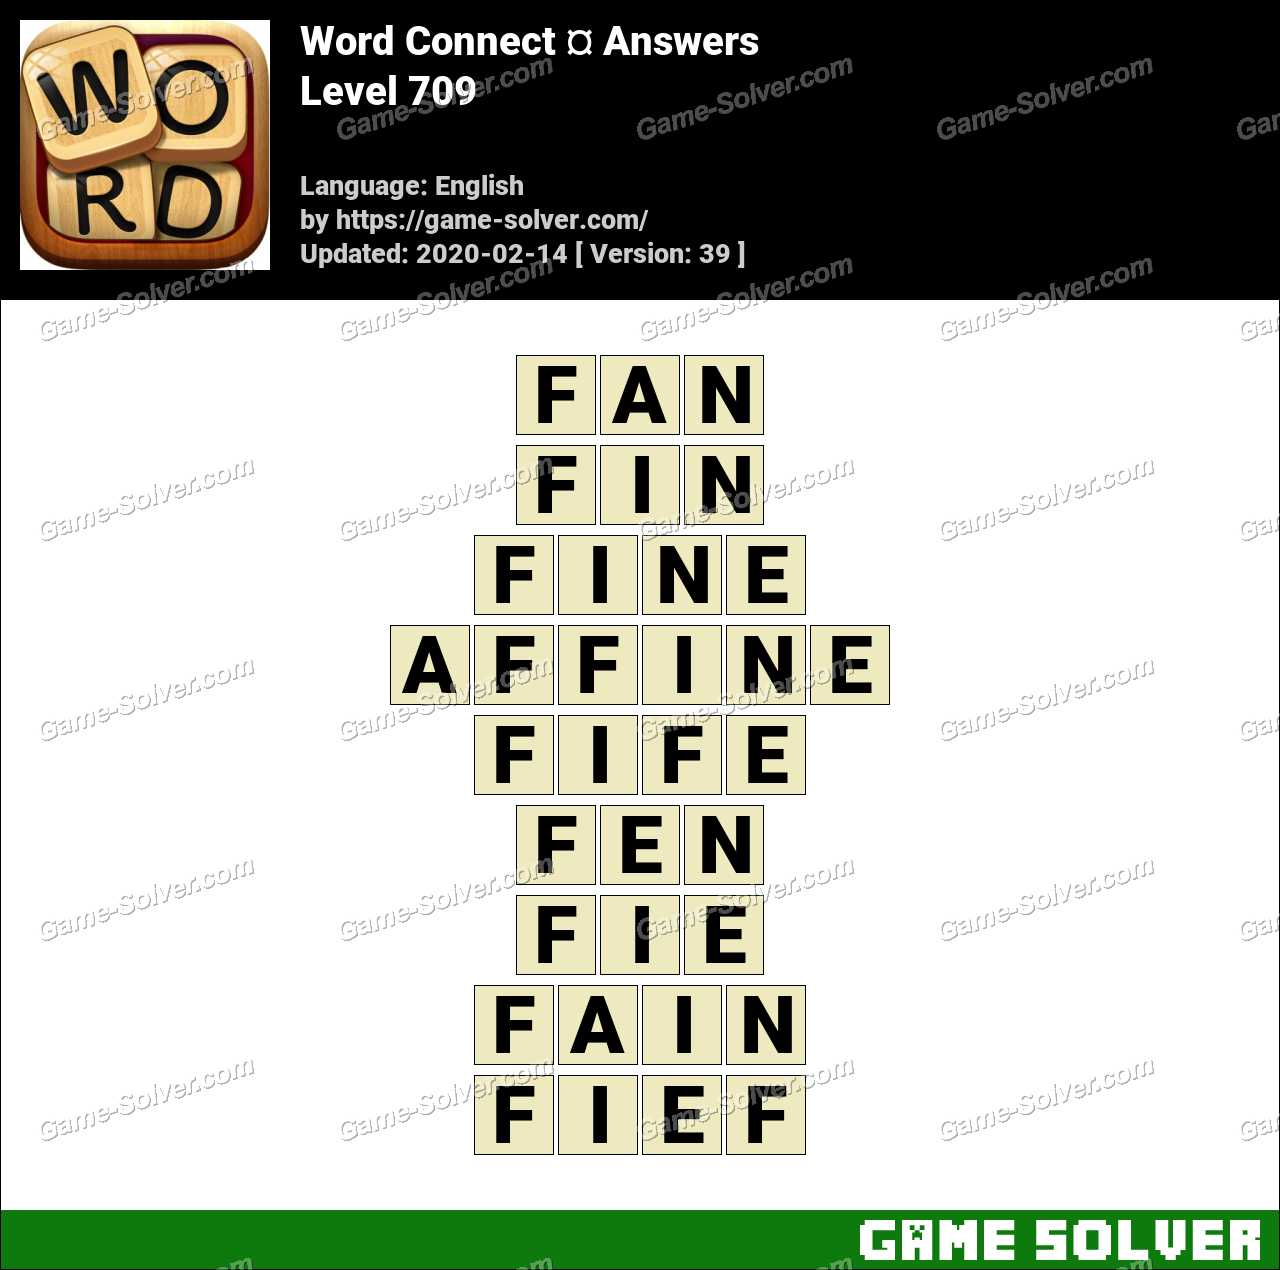 Word Connect Level 709 Answers